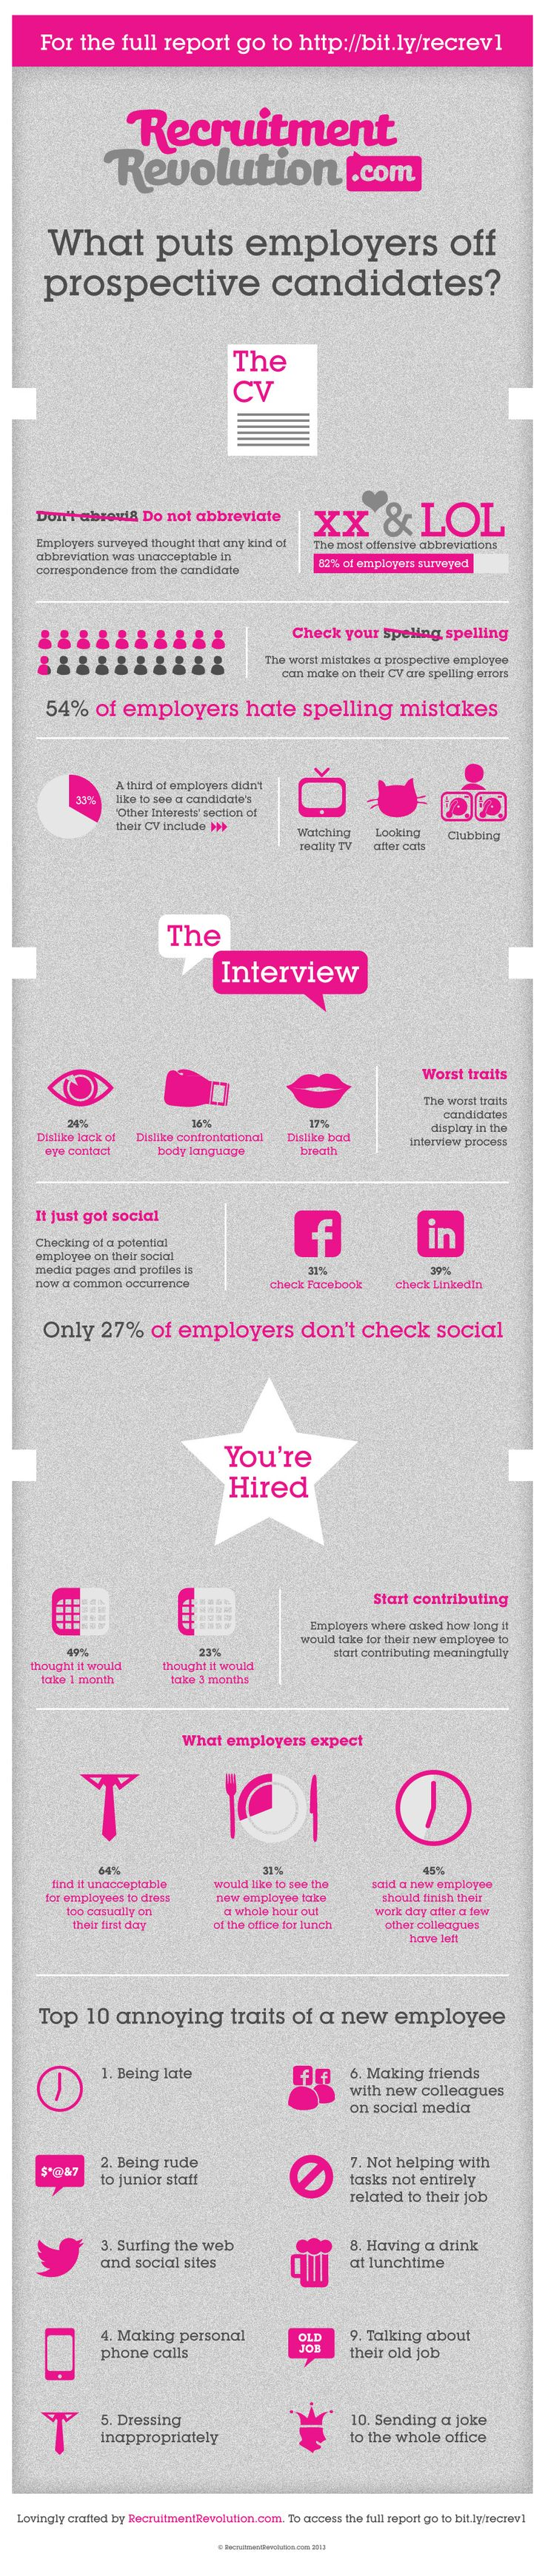 17 best images about job search resume interviewing tips on 17 best images about job search resume interviewing tips resume tips interview and job seekers